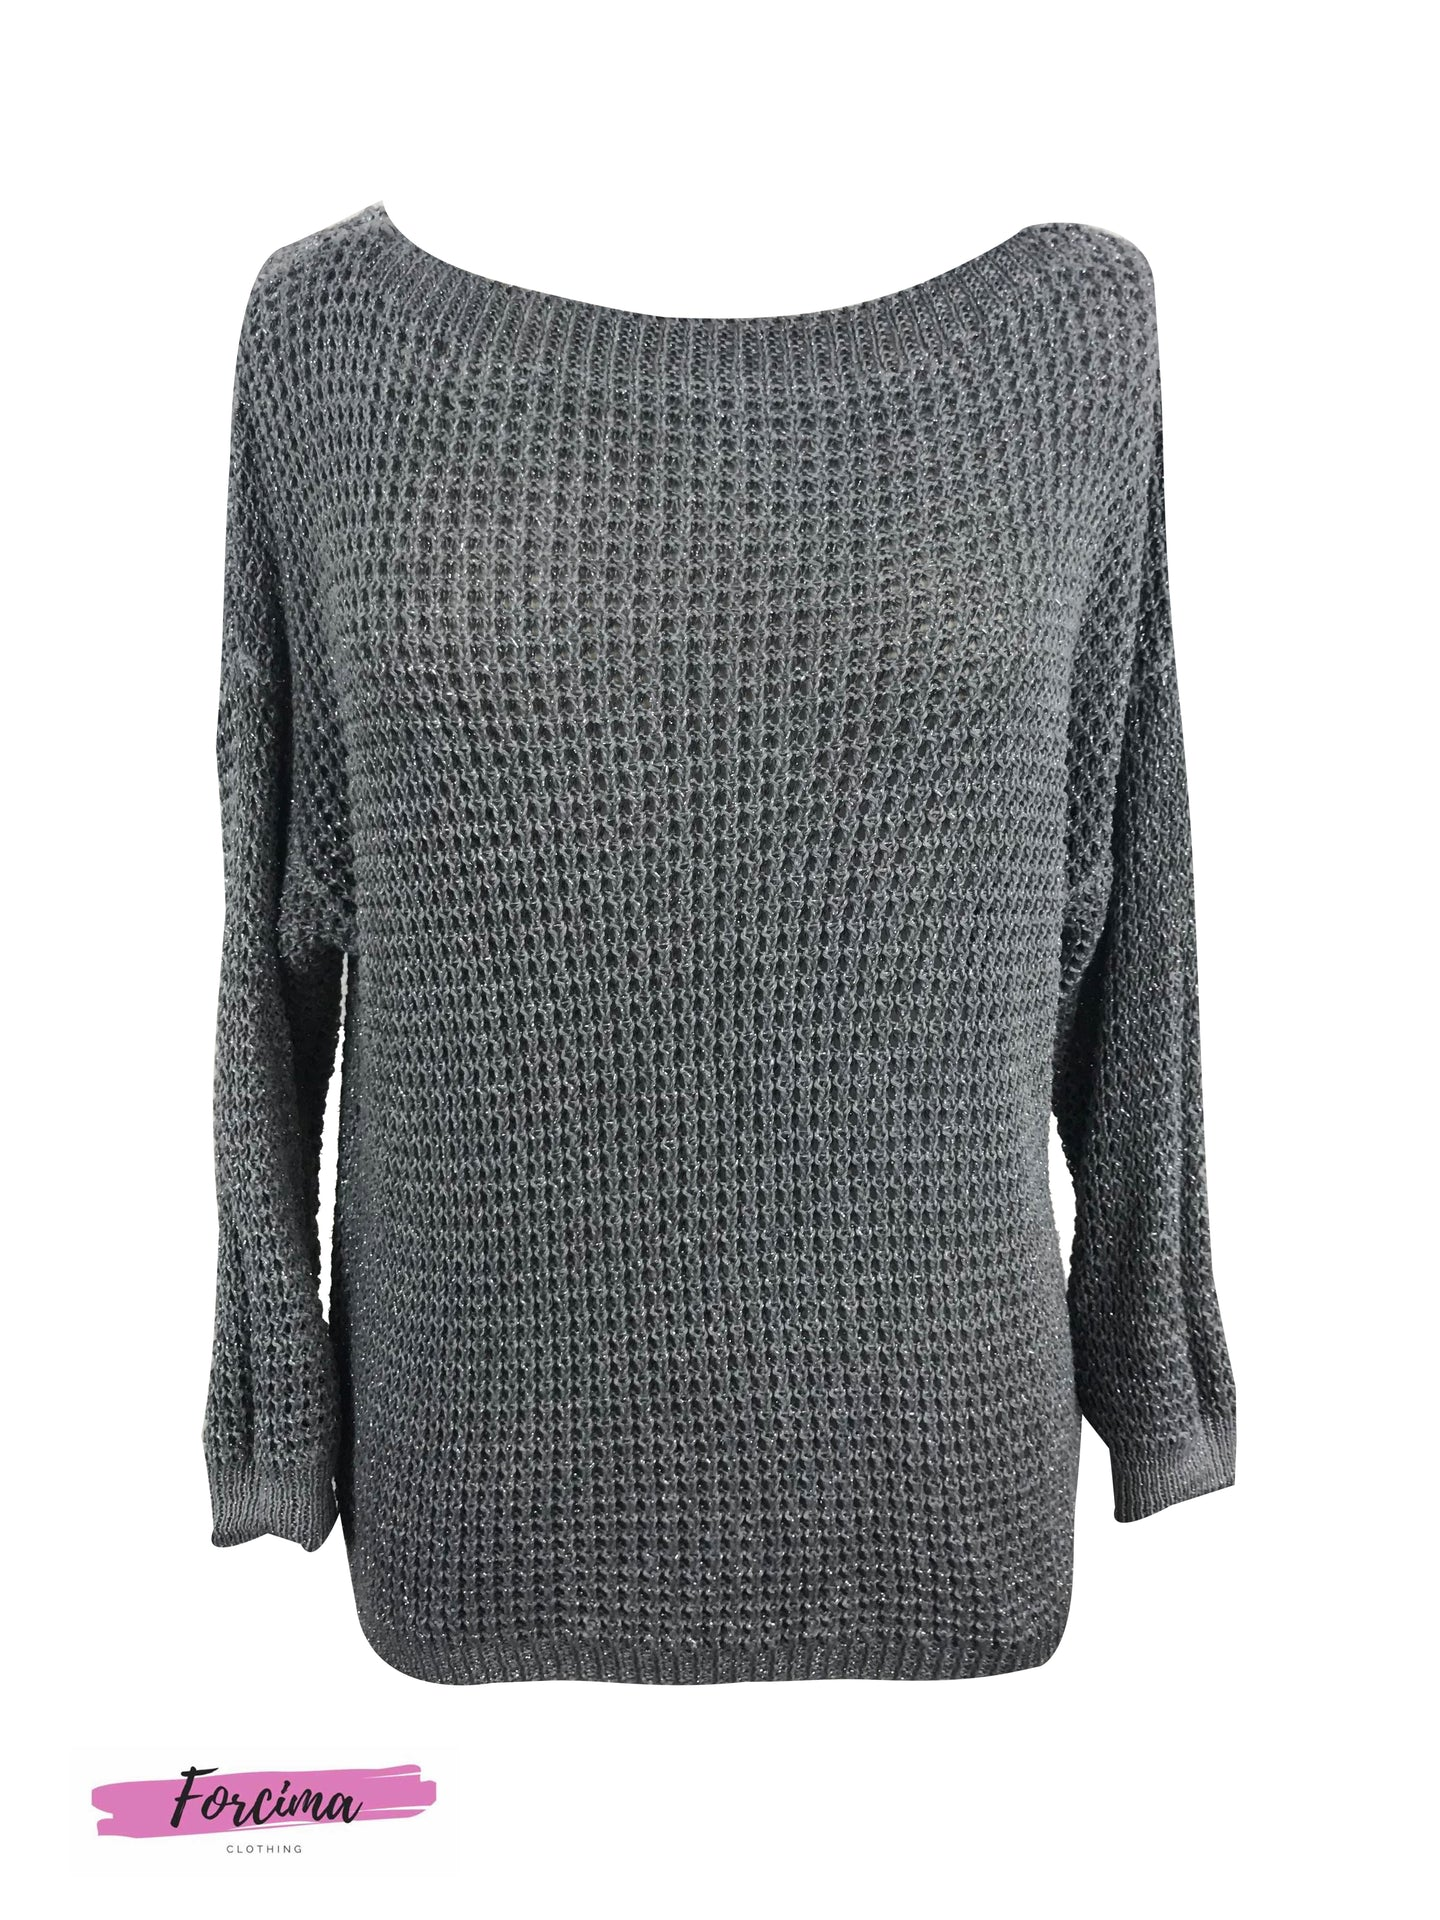 Lurex Crochet Knit grey